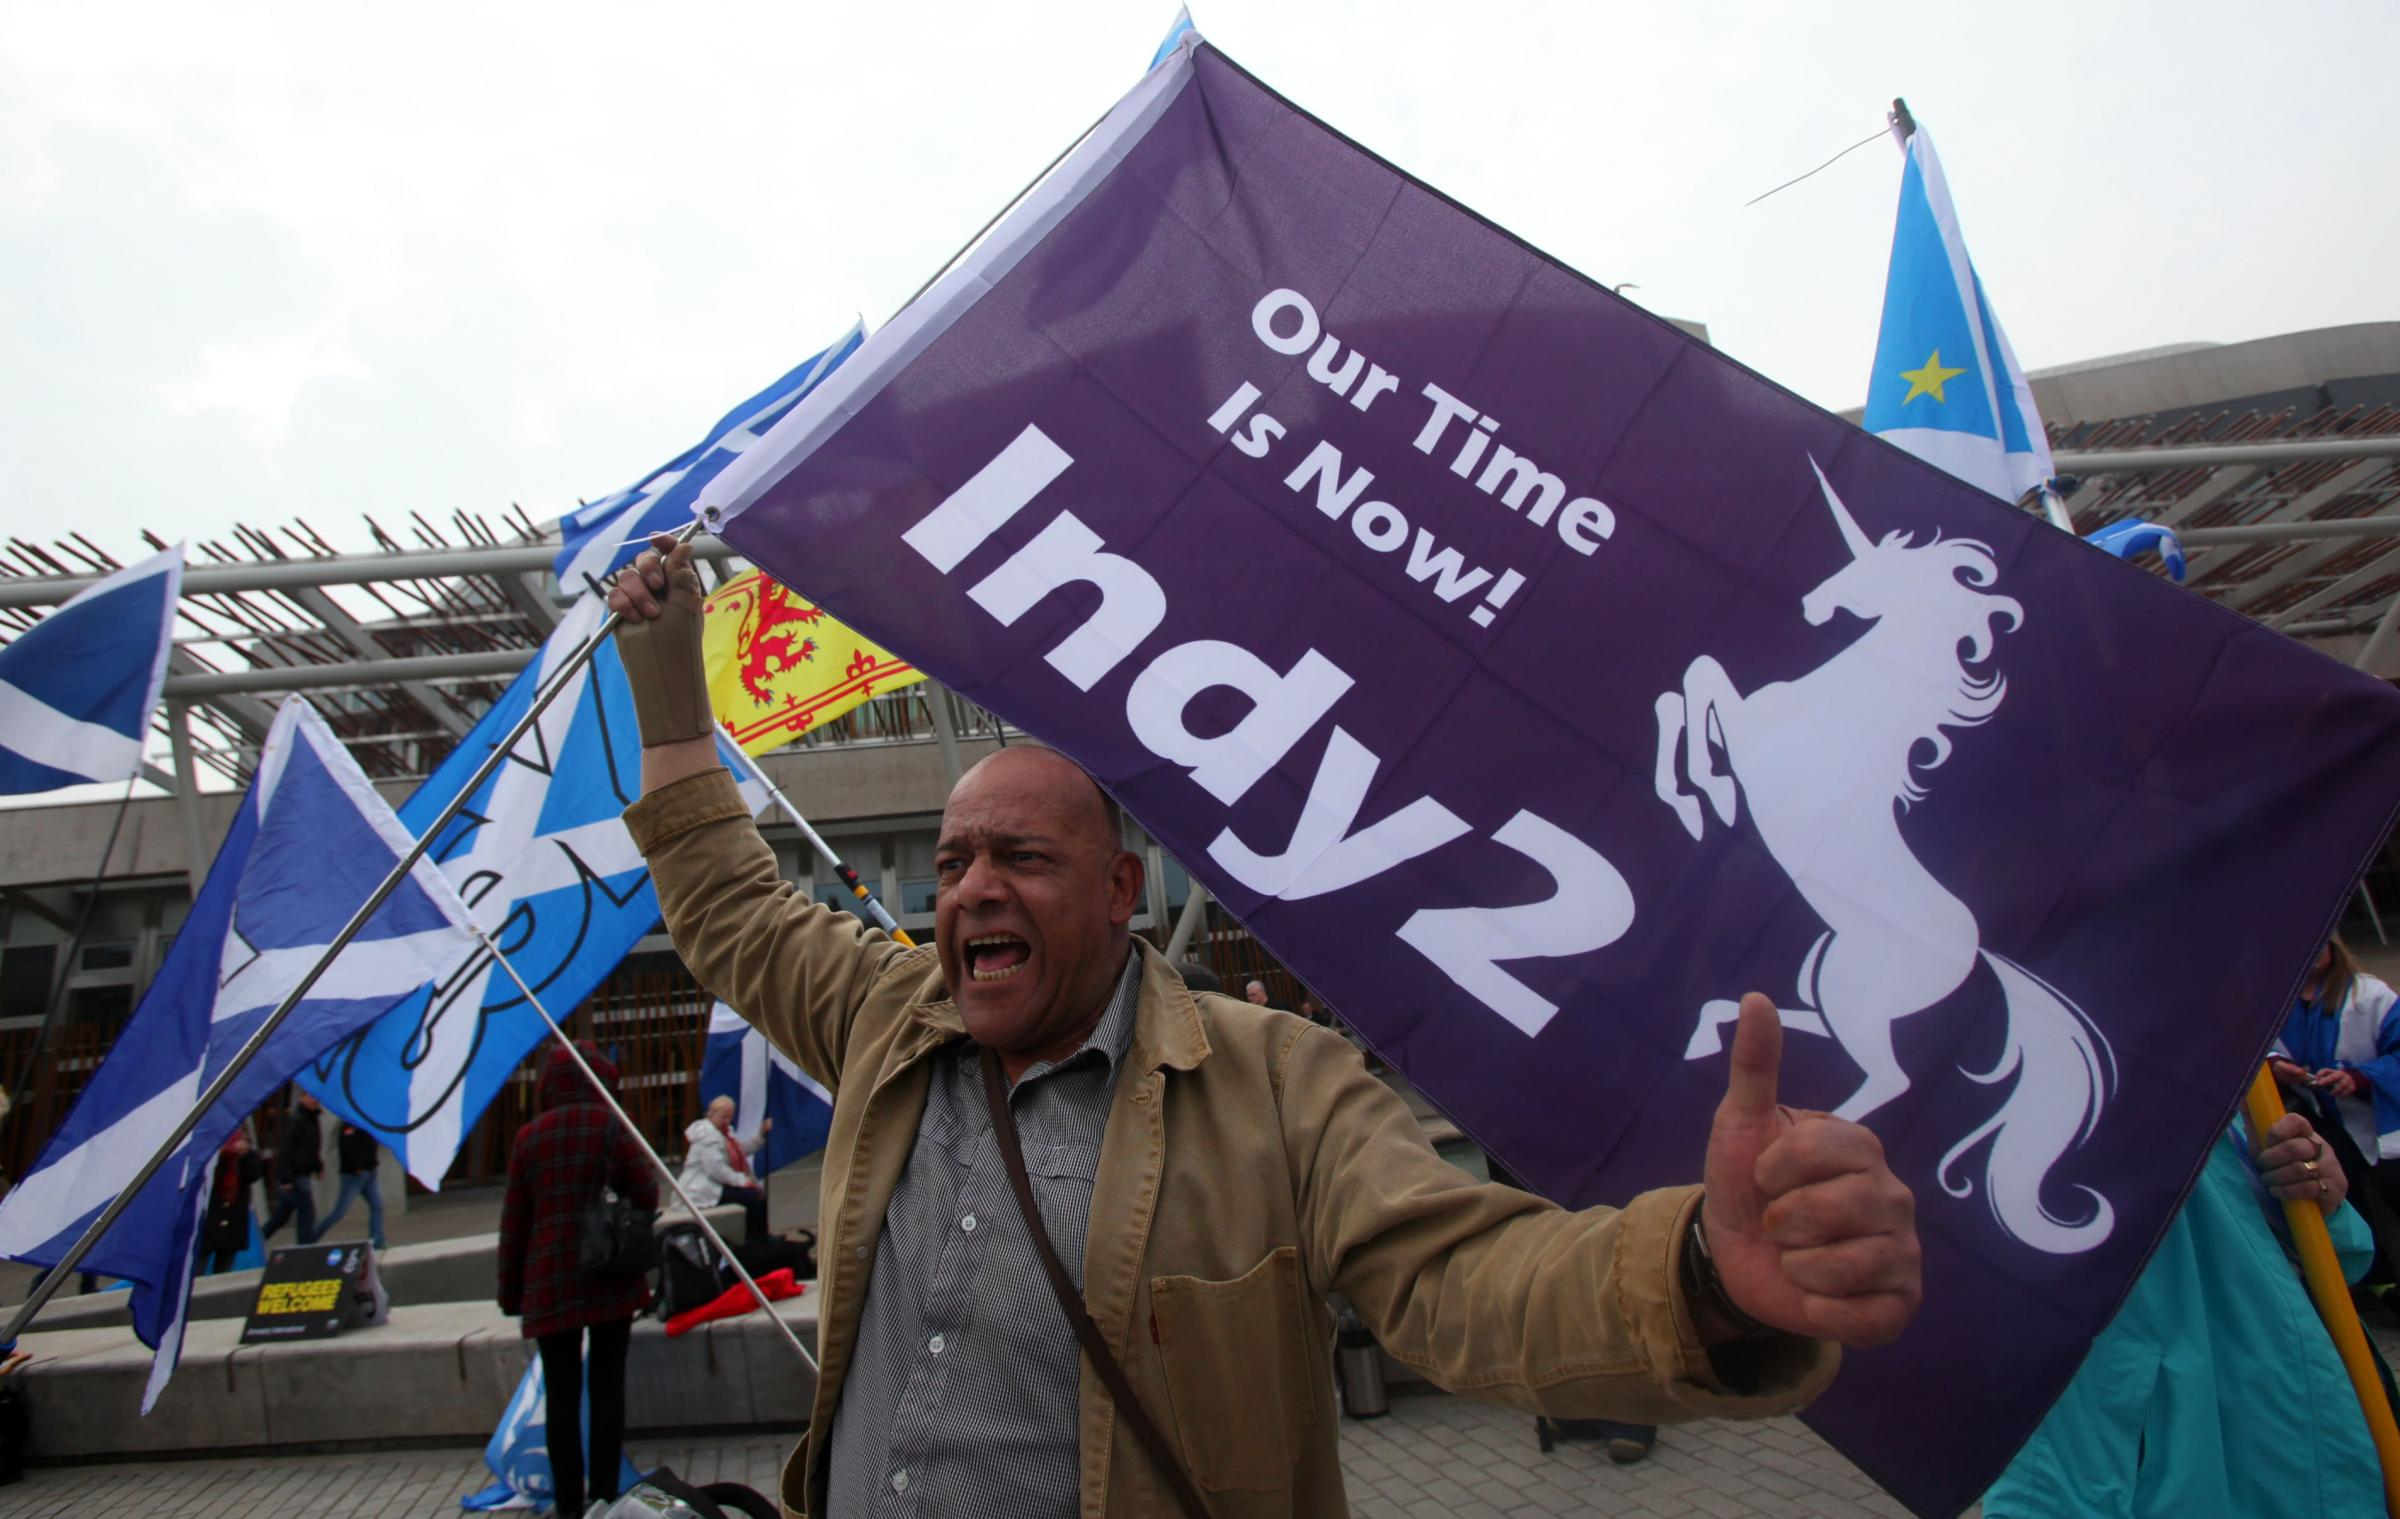 We don't need a second EU vote. But we do need indyref2